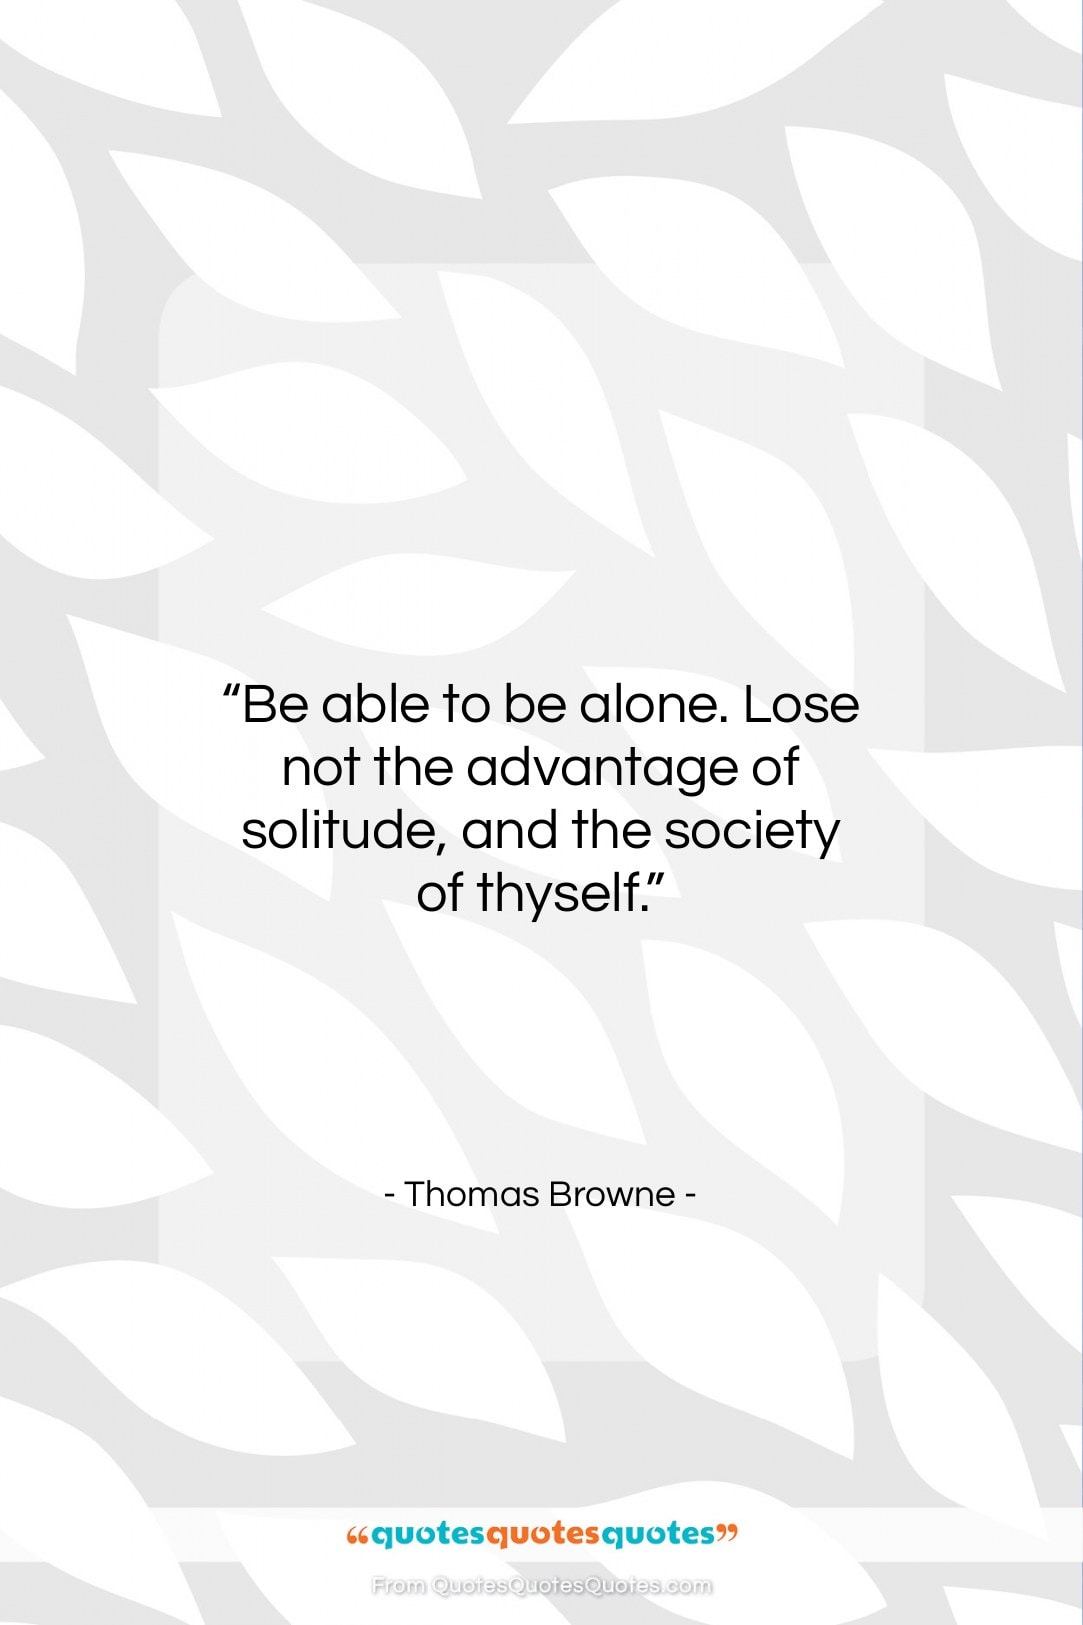 """Thomas Browne quote: """"Be able to be alone. Lose not…""""- at QuotesQuotesQuotes.com"""